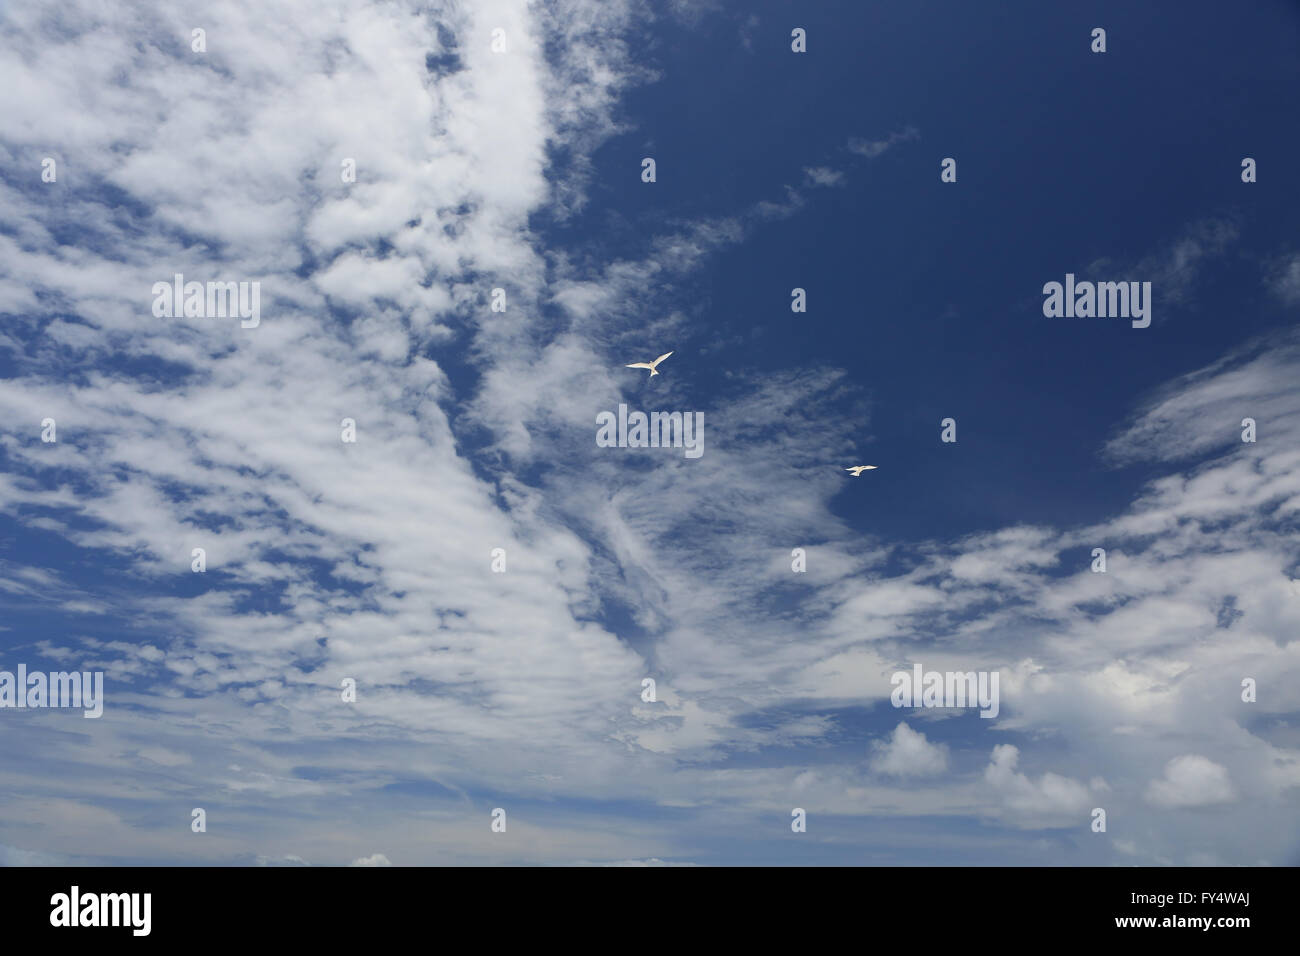 White, fluffy clouds and white fairy tern birds in the blue sky - Stock Image